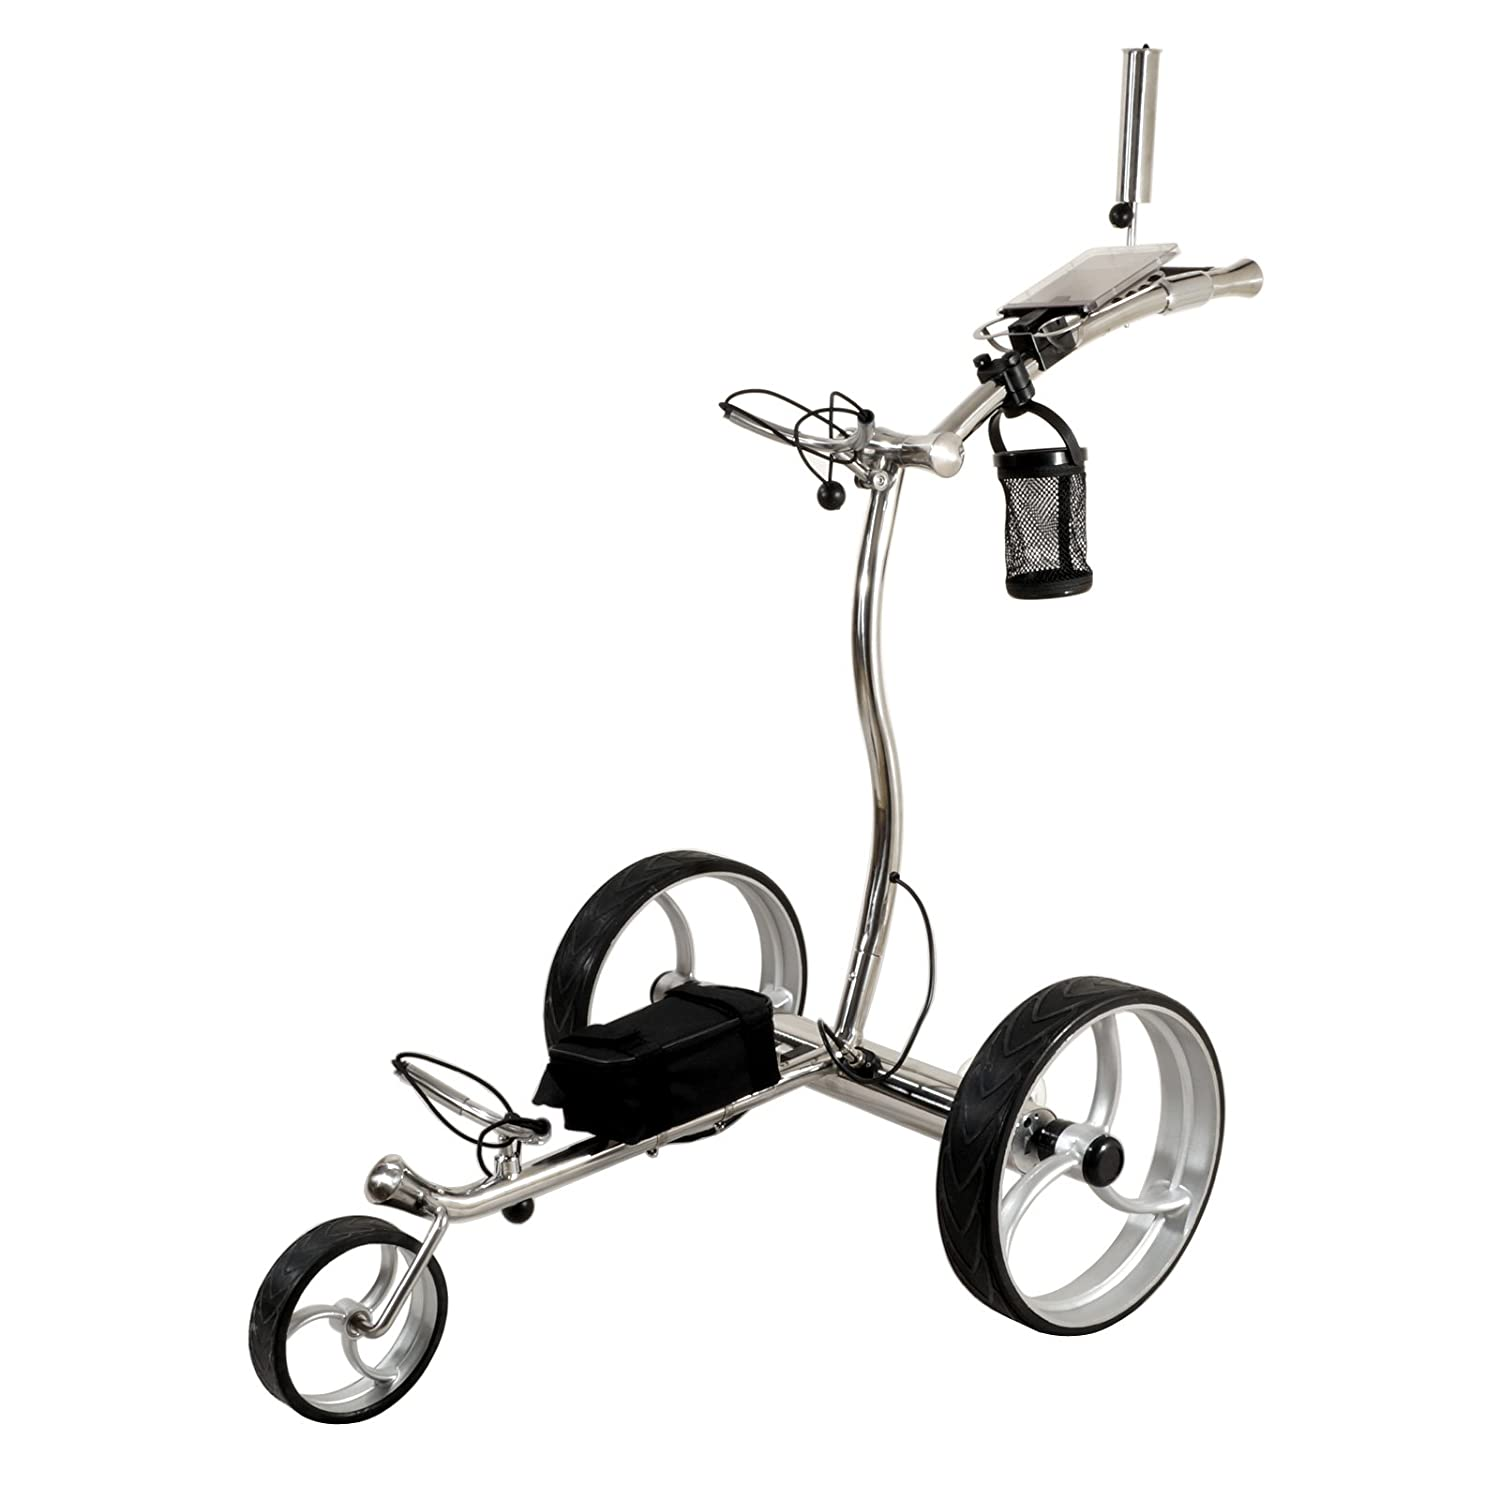 NovaCaddy Remote Control Electric Golf Trolley Cart Black Friday 2019 Deal